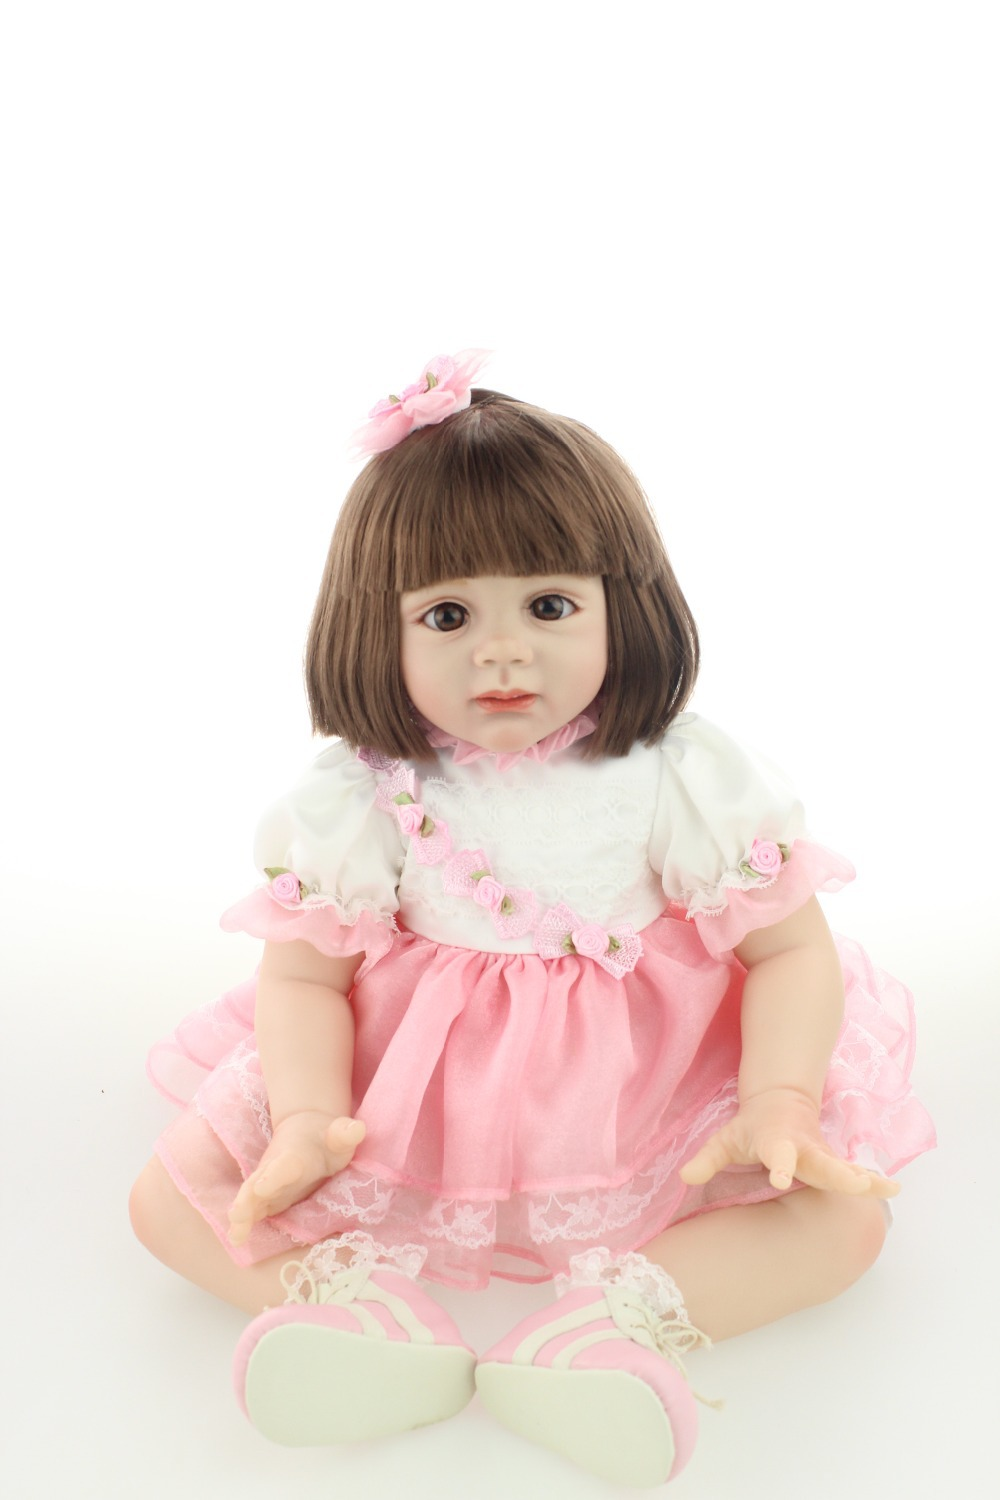 2015 NEW design soft silicone reborn baby doll rooted human hair fashion doll Christmas gift 2015 new design soft silicone reborn baby doll rooted human hair fashion doll christmas gift